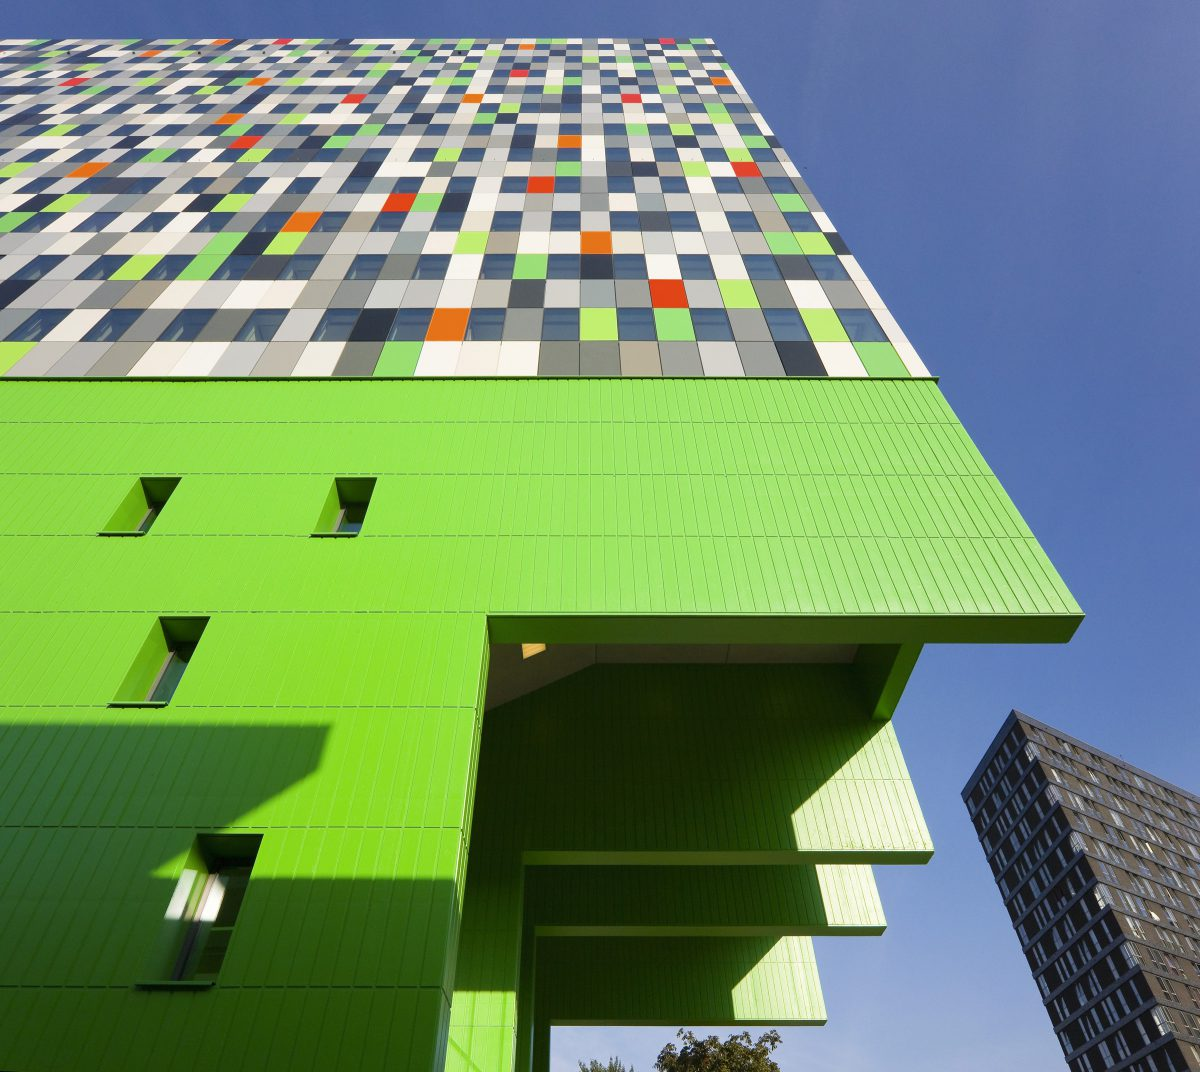 Marlies Rohmer, Casa Confetti, student housing, SSH, Utrecht, Steel plates, abstract, Pattern, porch swing, green